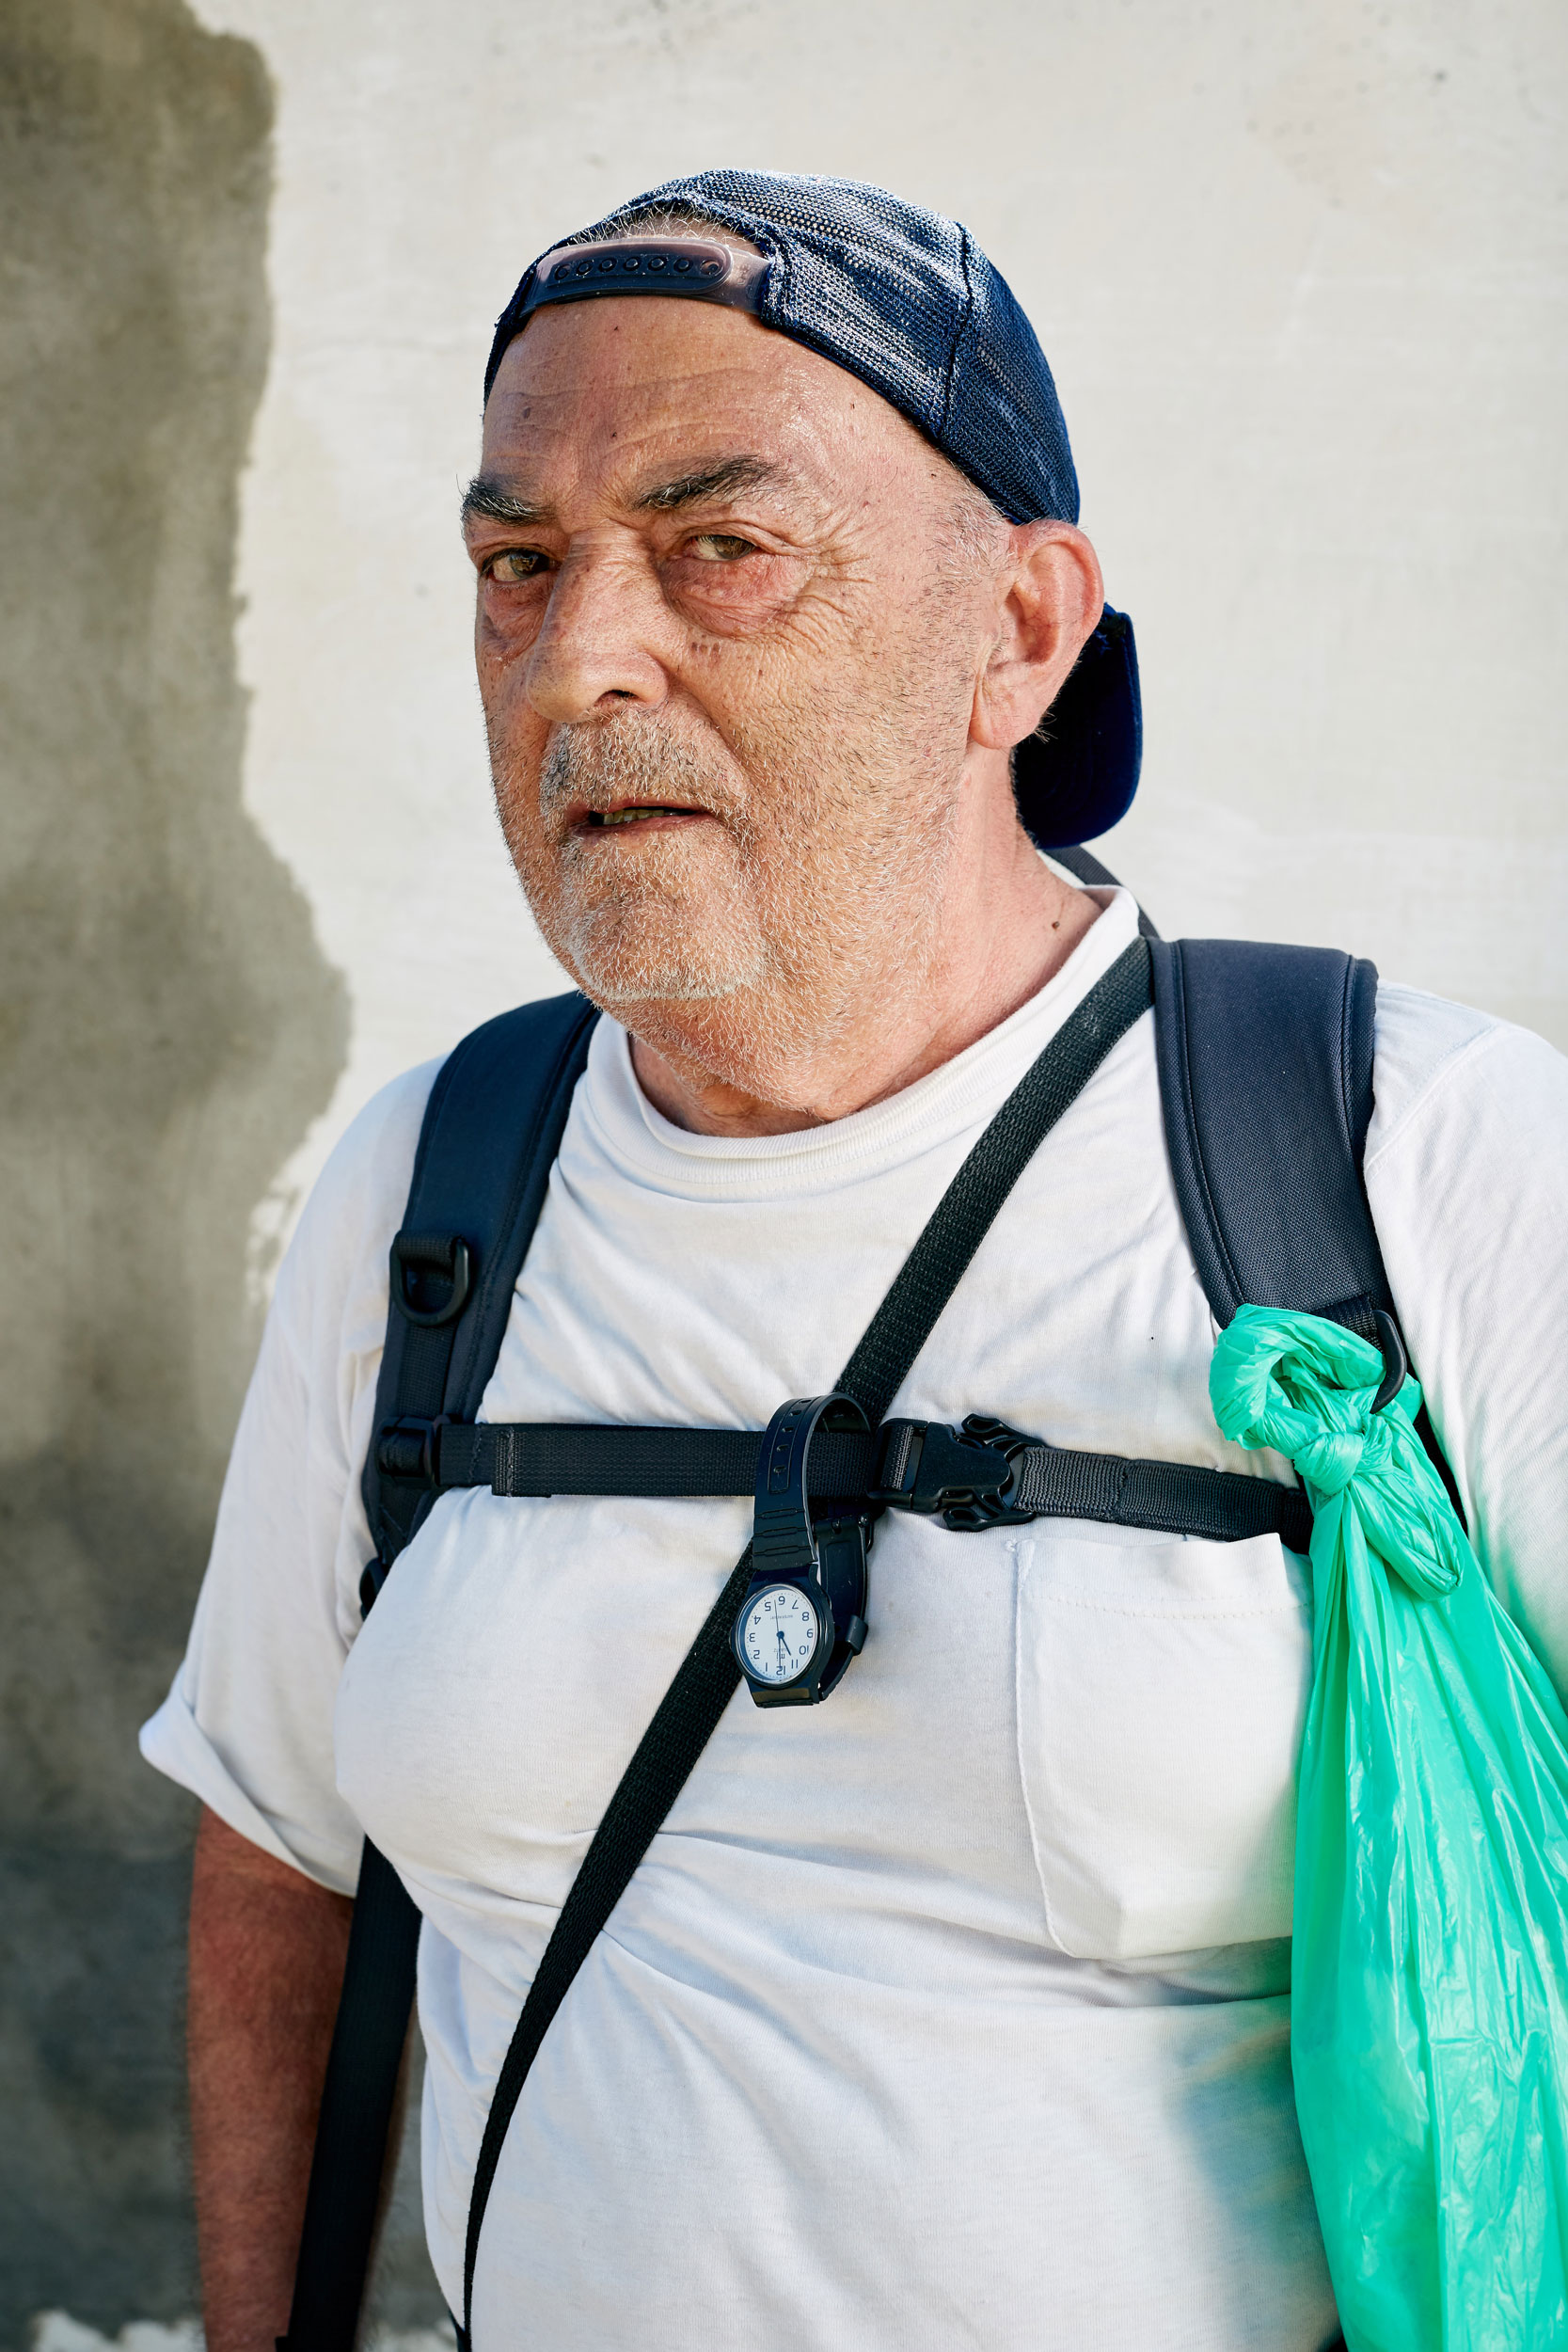 An elderly Camino pilgrim has a watch and plastic bag strapped to his rucksack by documentary portrait photographer Duncan Elliott